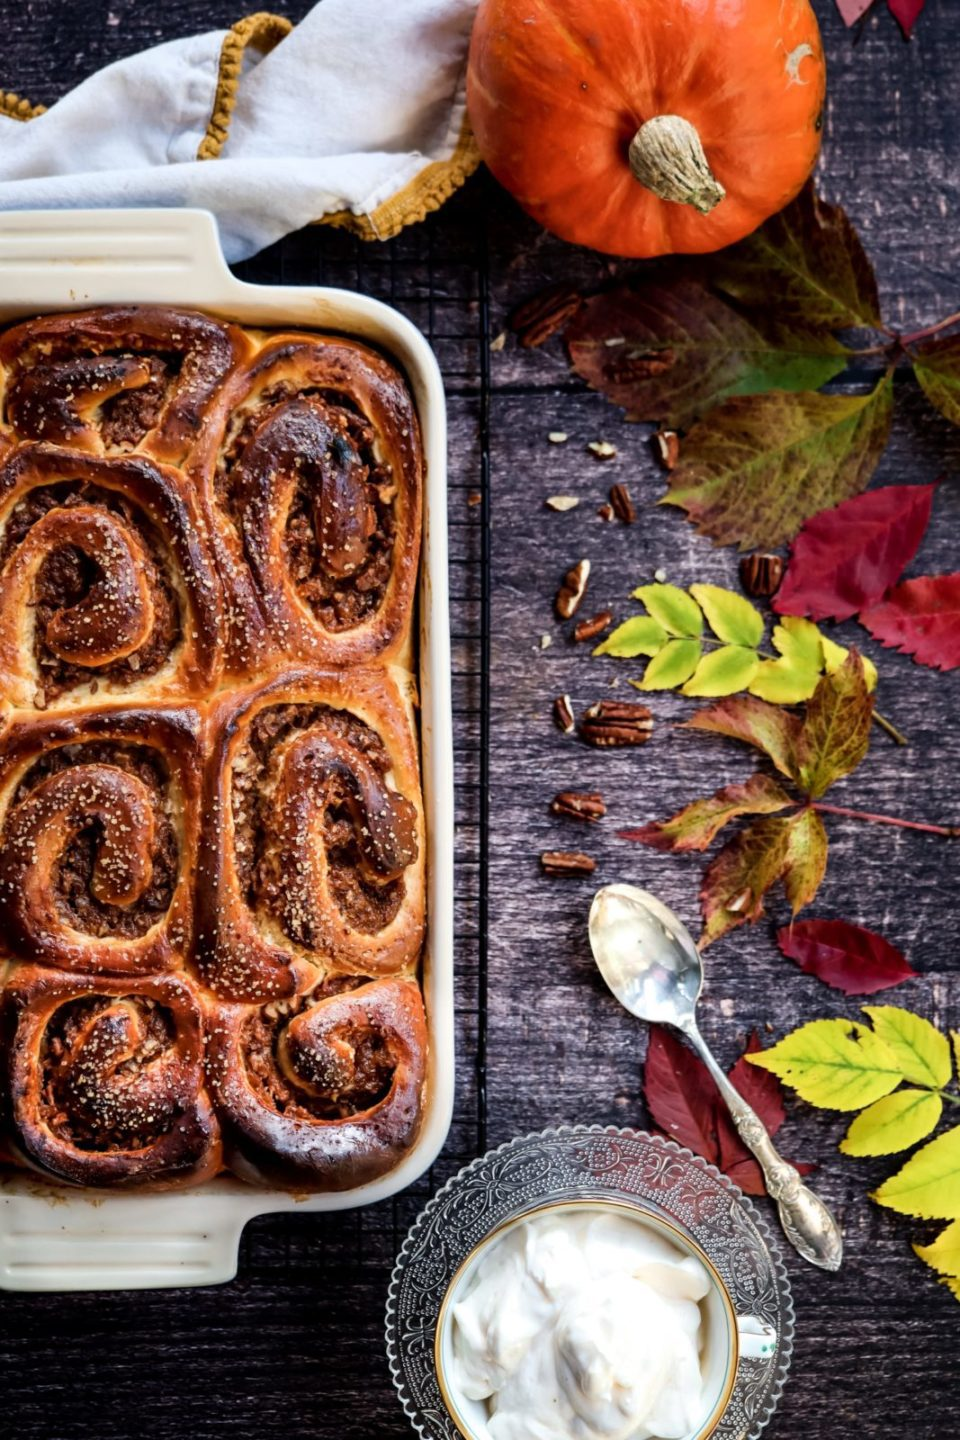 Cinnamon brioche rolls in the baking tray